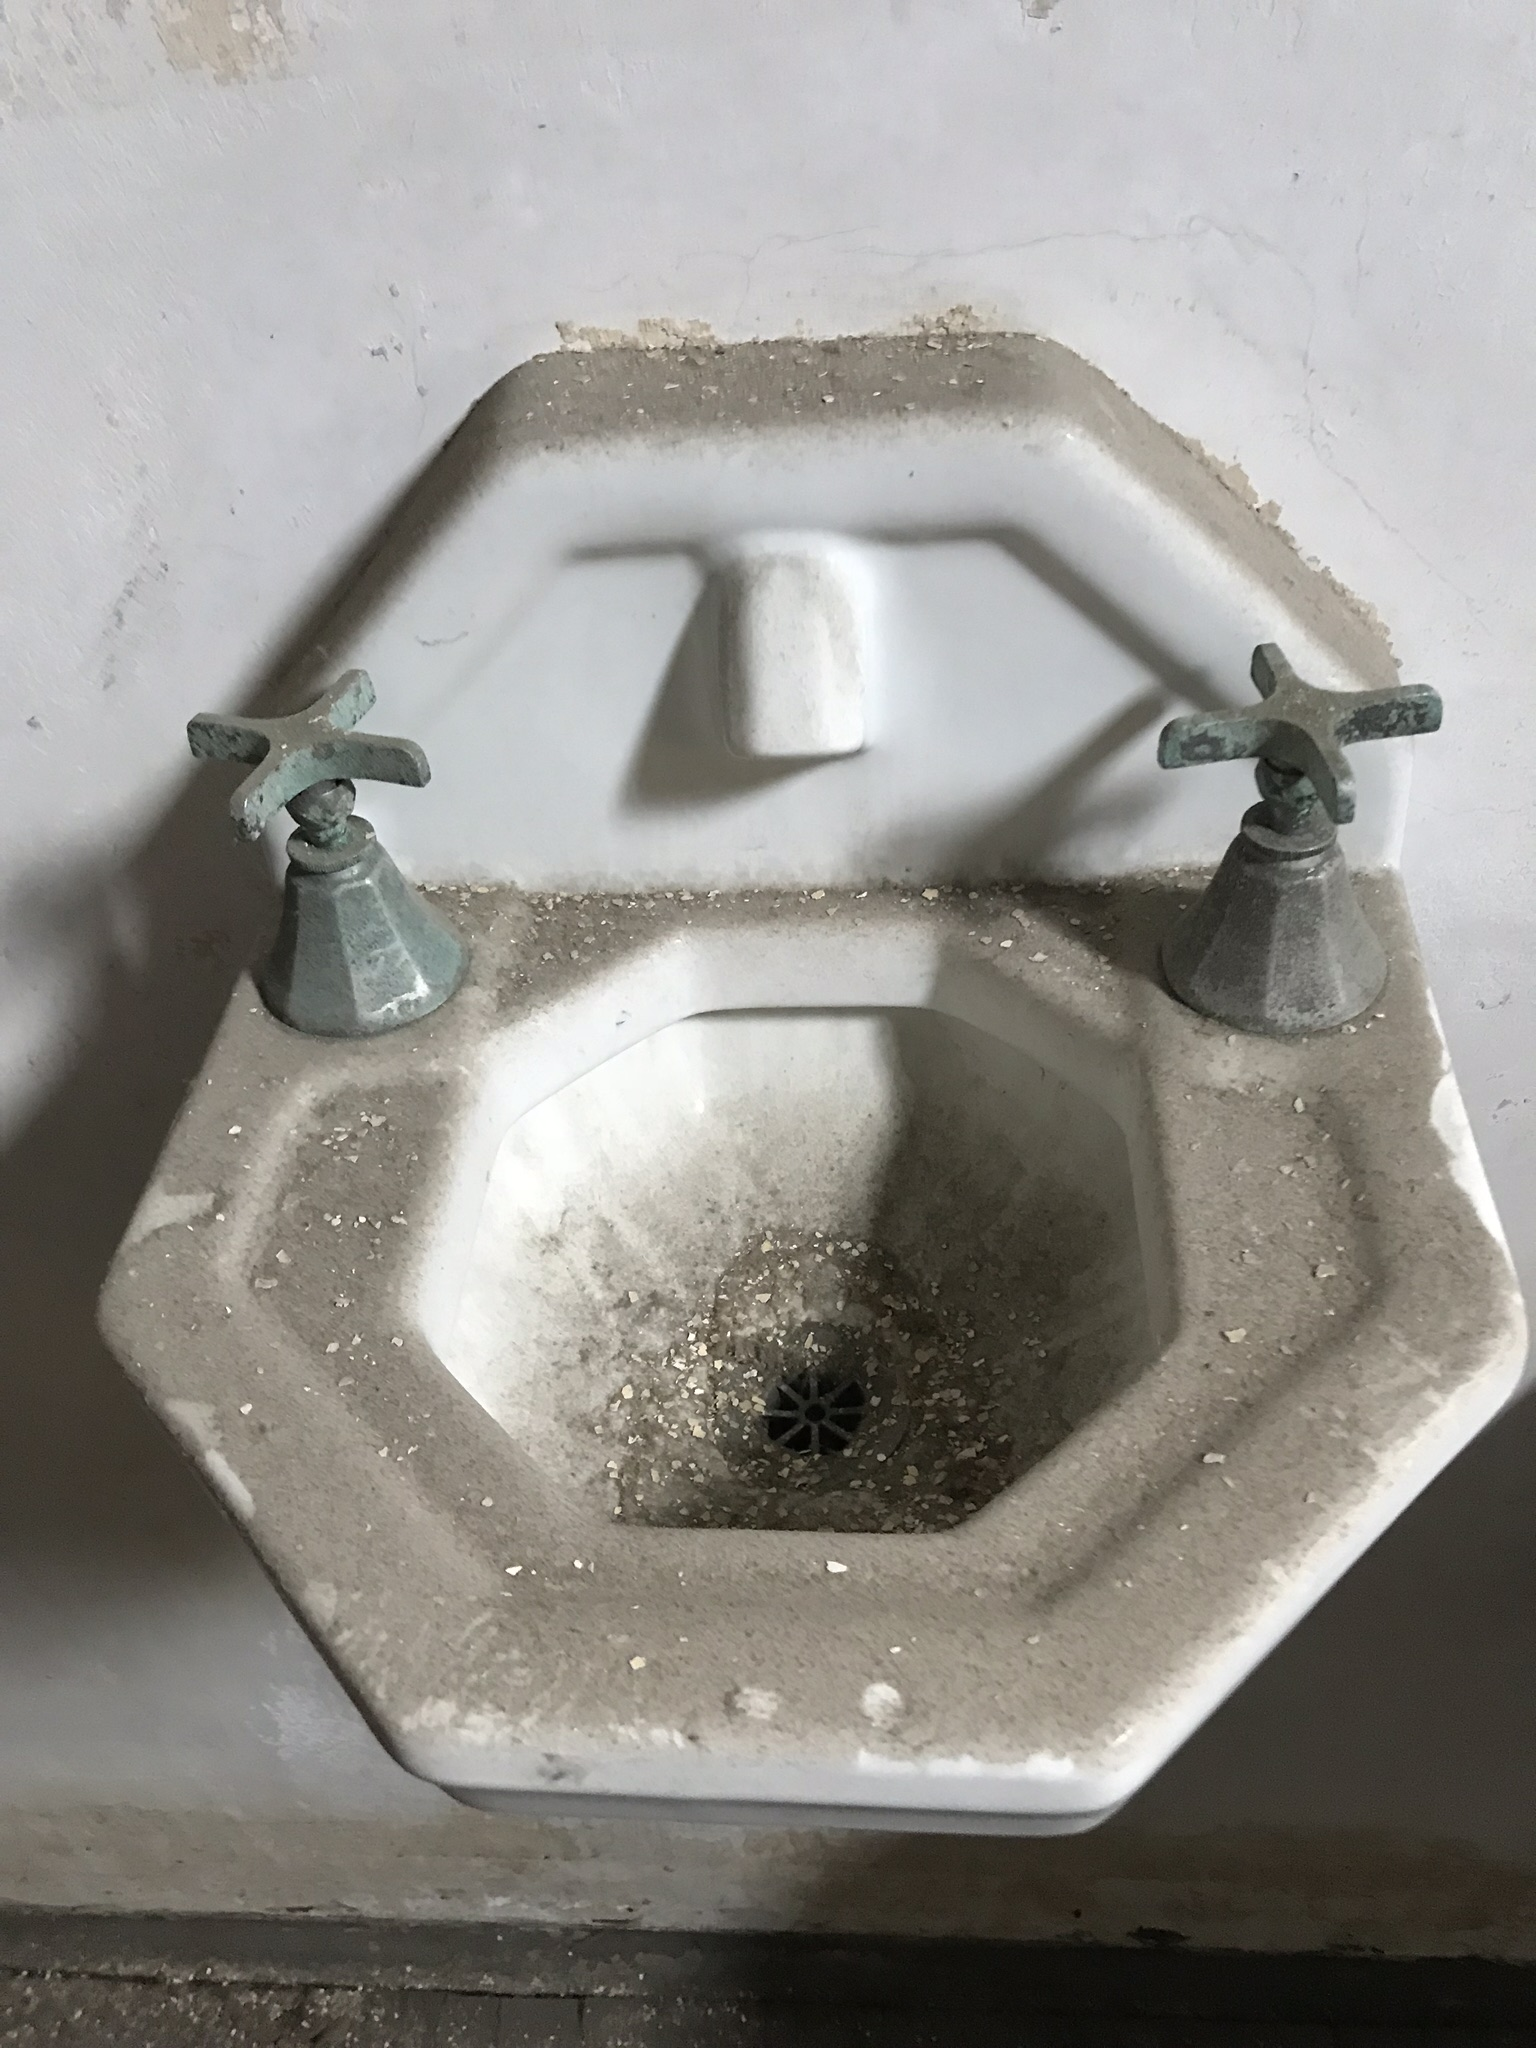 Spittoon sink for patients with tuberculosis.